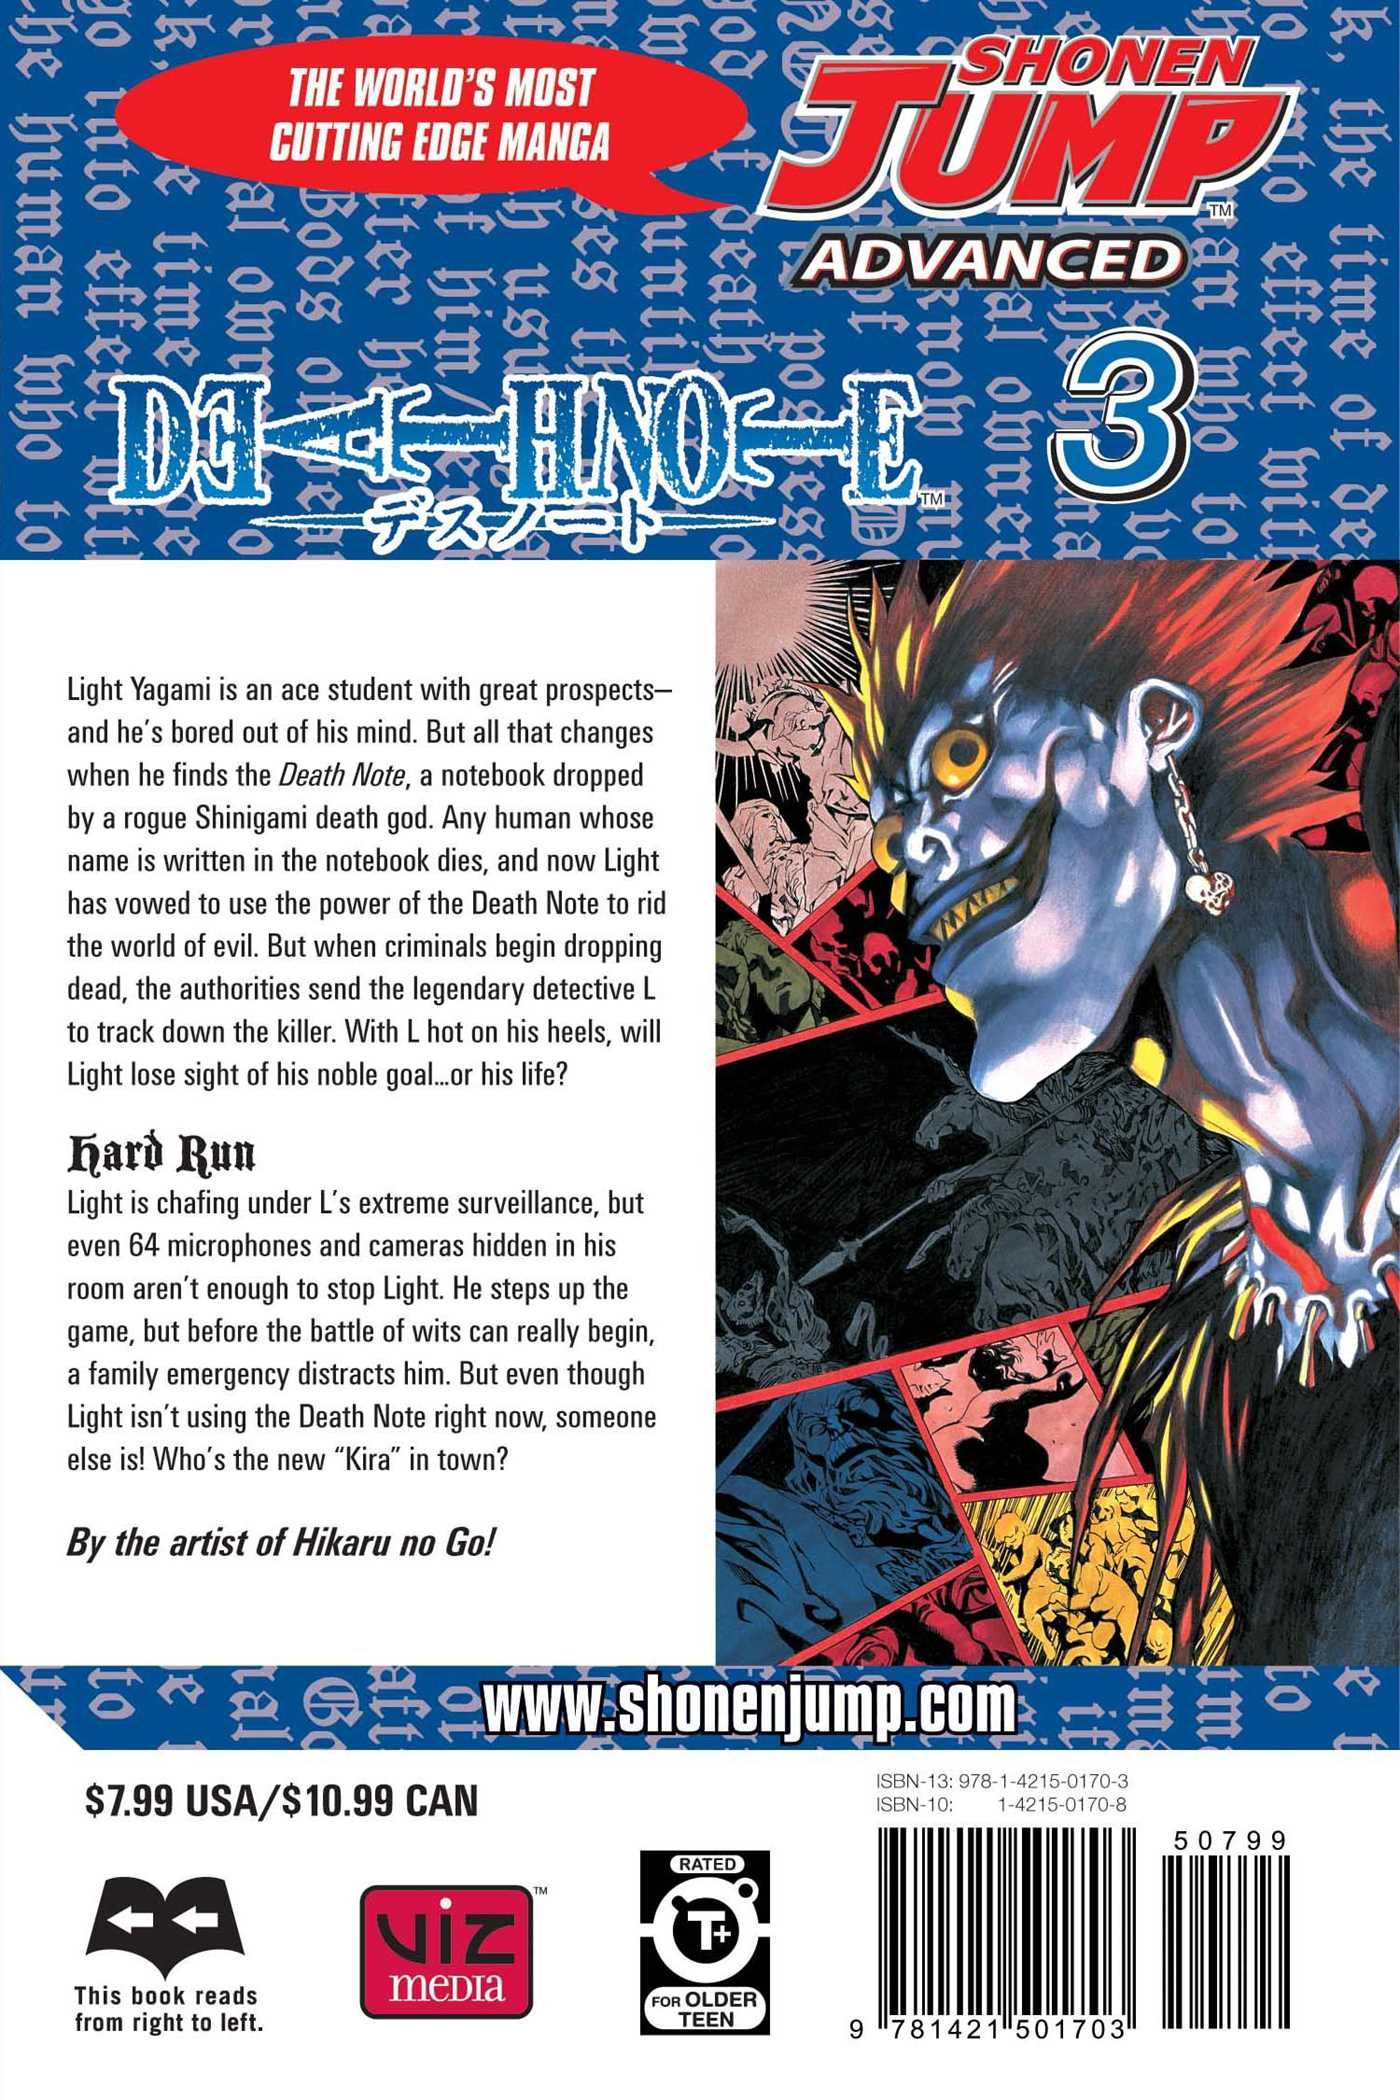 Death-note-vol-3-9781421501703_hr-back